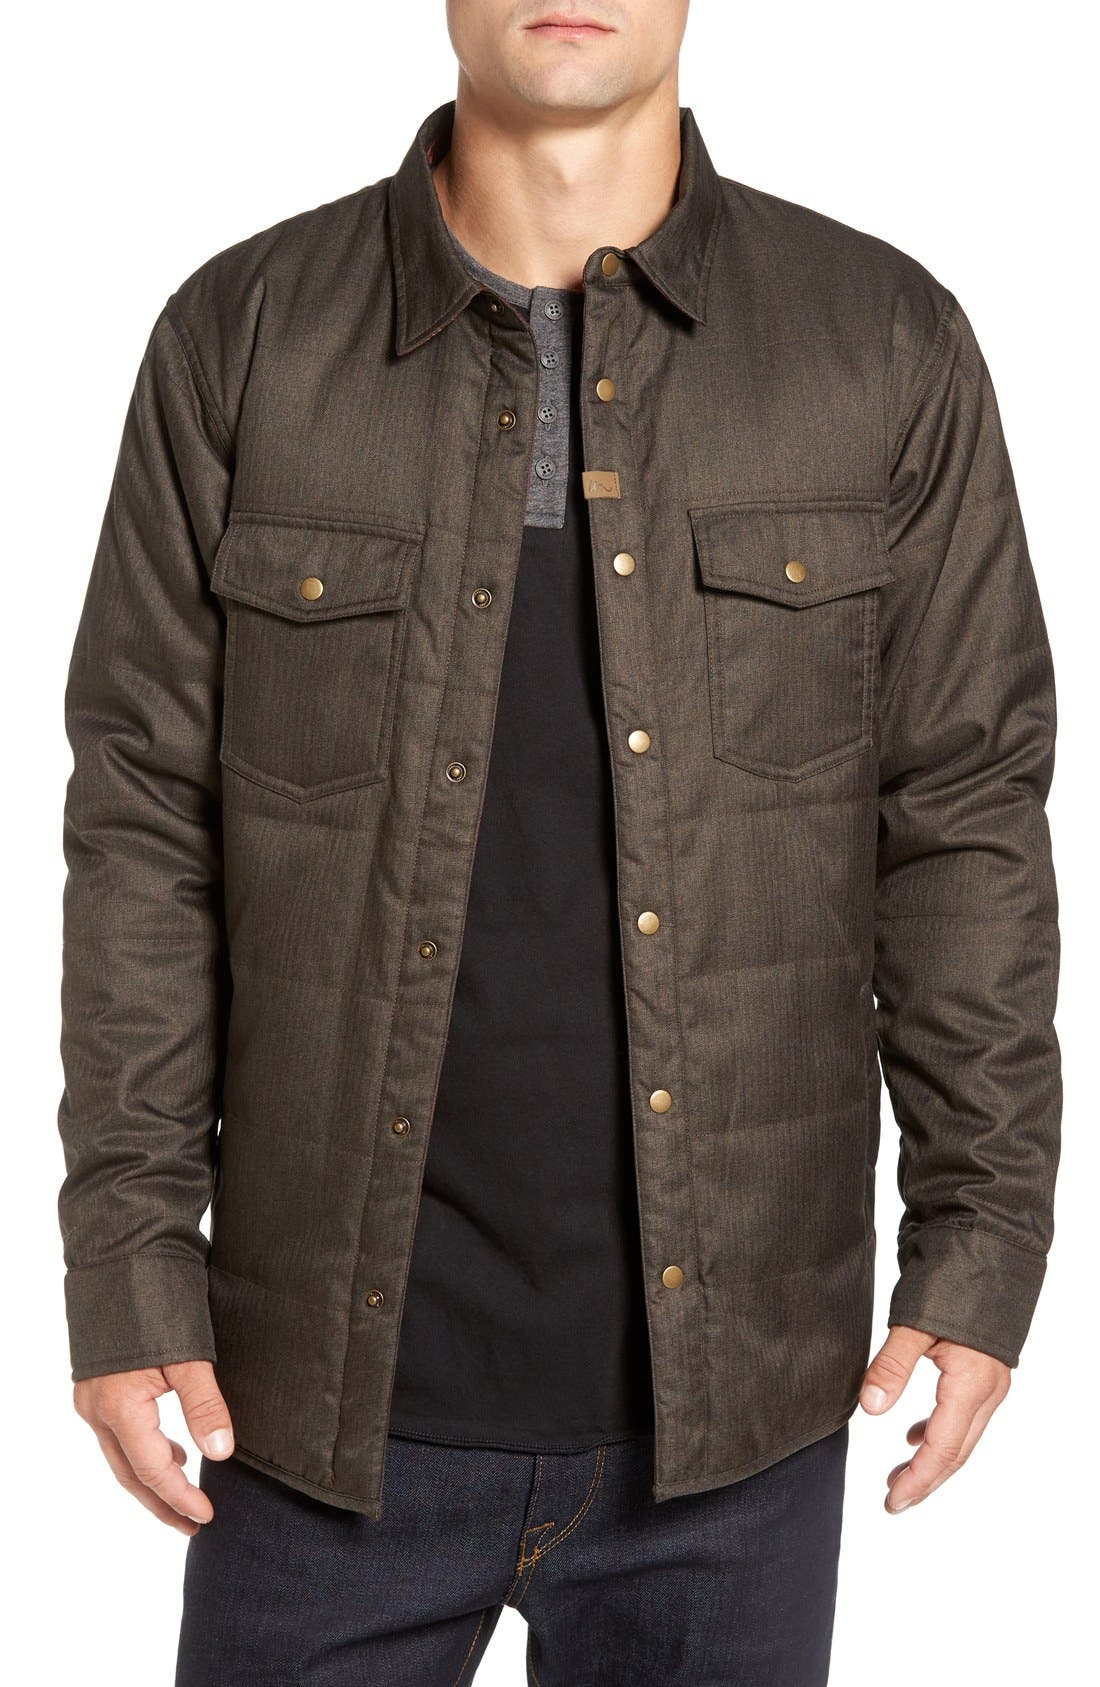 Imperial Motion 'Carton' Reversible Quilted Shirt Jacket